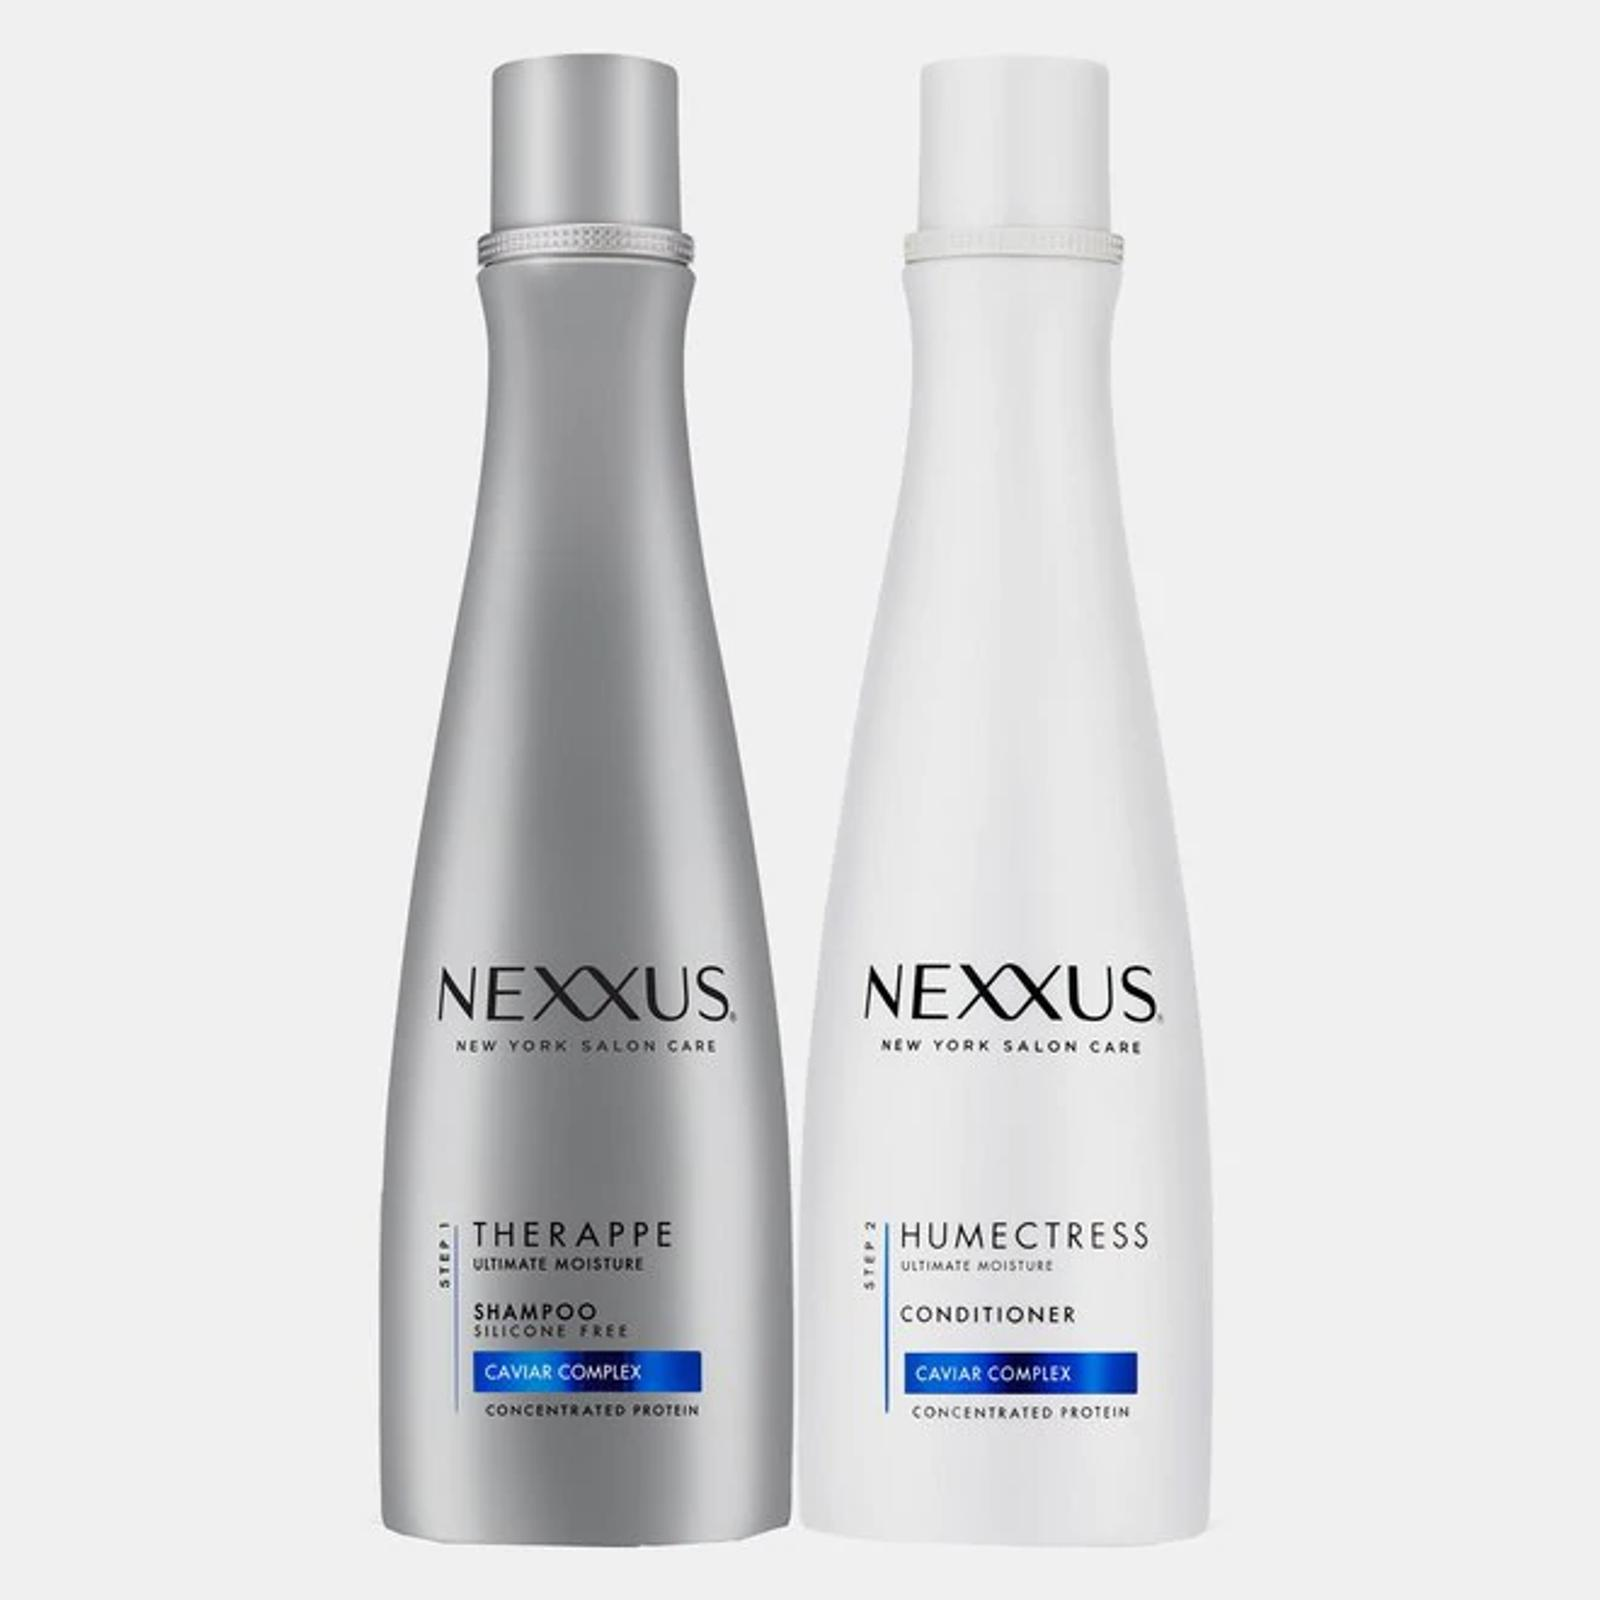 Image of Therappe and Humectress Shampoo Conditioner Product Set